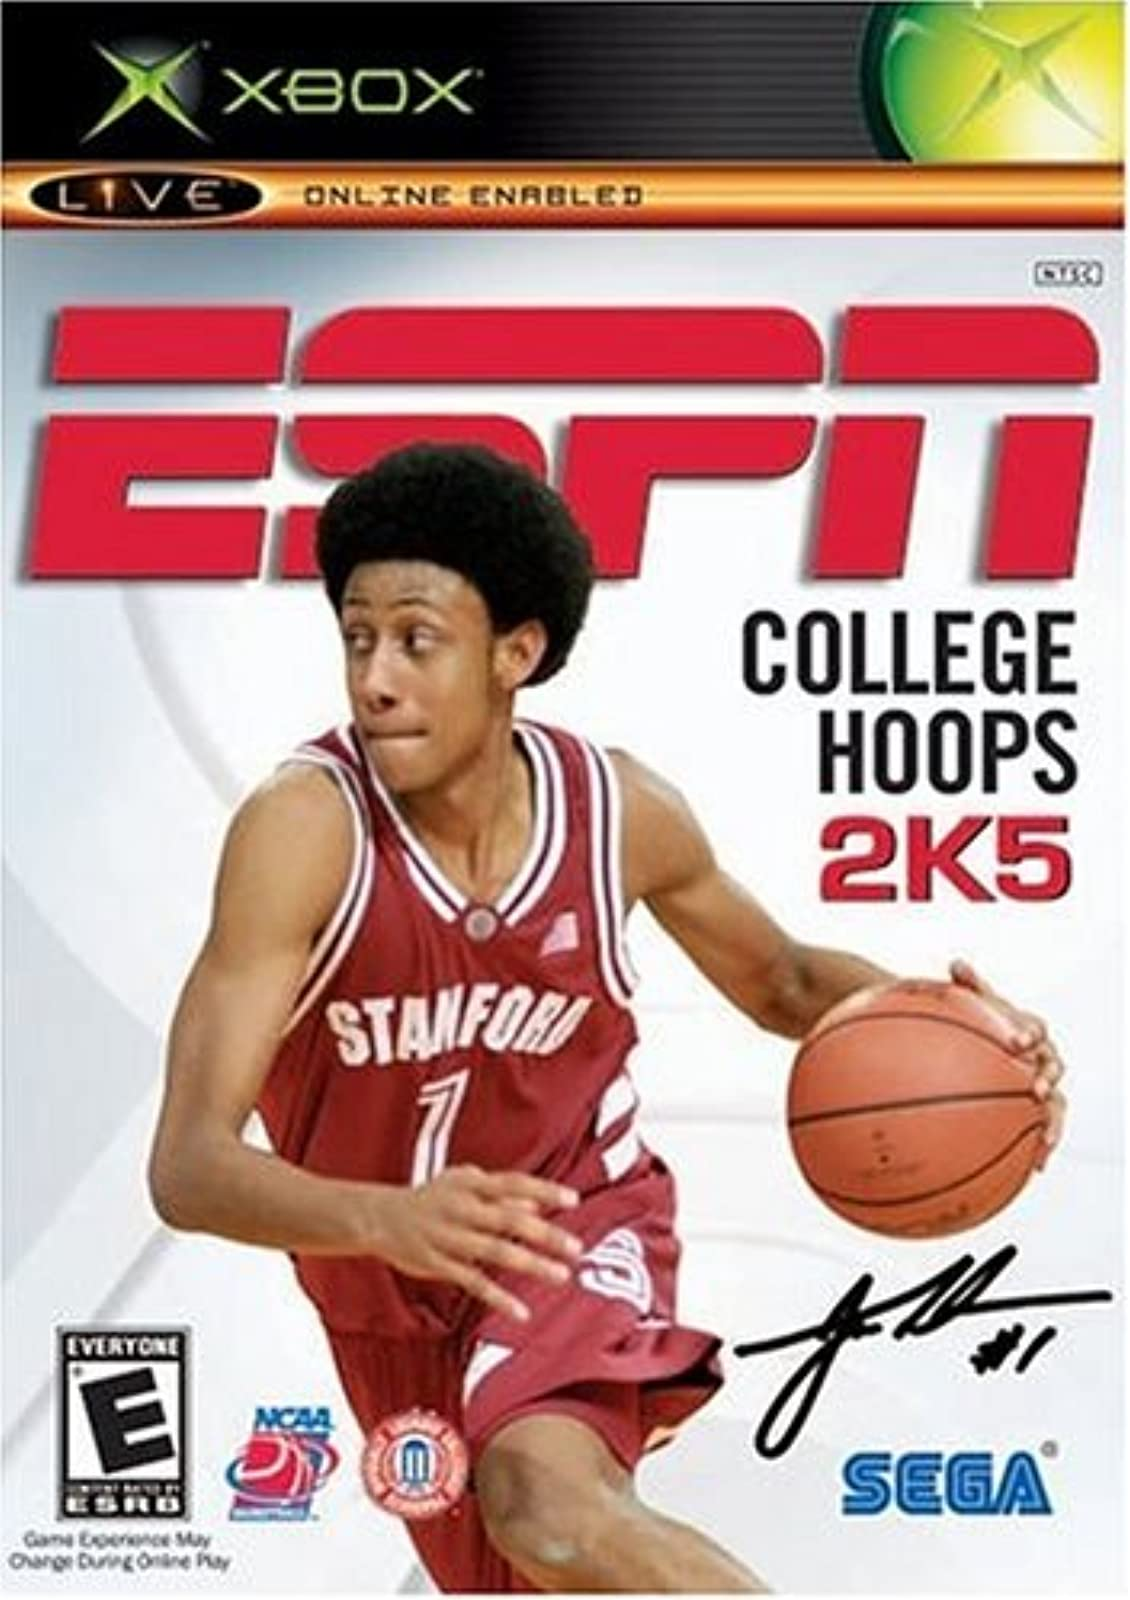 ESPN College Hoops 2K5 Xbox For Xbox Original Basketball